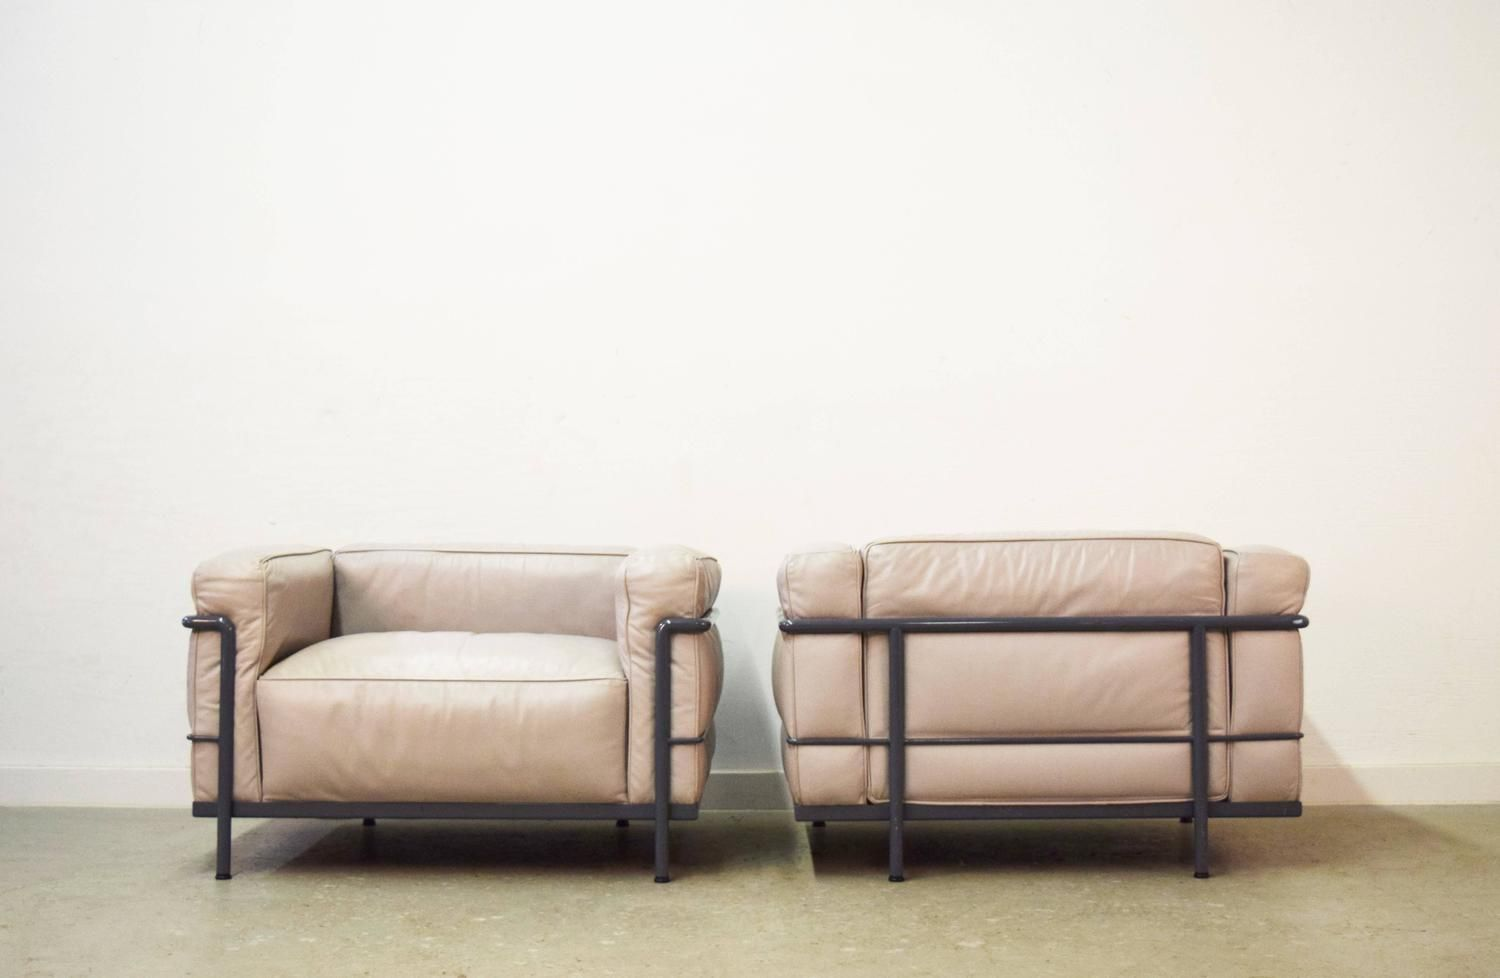 Pair Of Le Corbusier Lc3 Grand Confort Chairs By Cassina Furniture Modern Lounge Chairs Le Corbusier Sofa